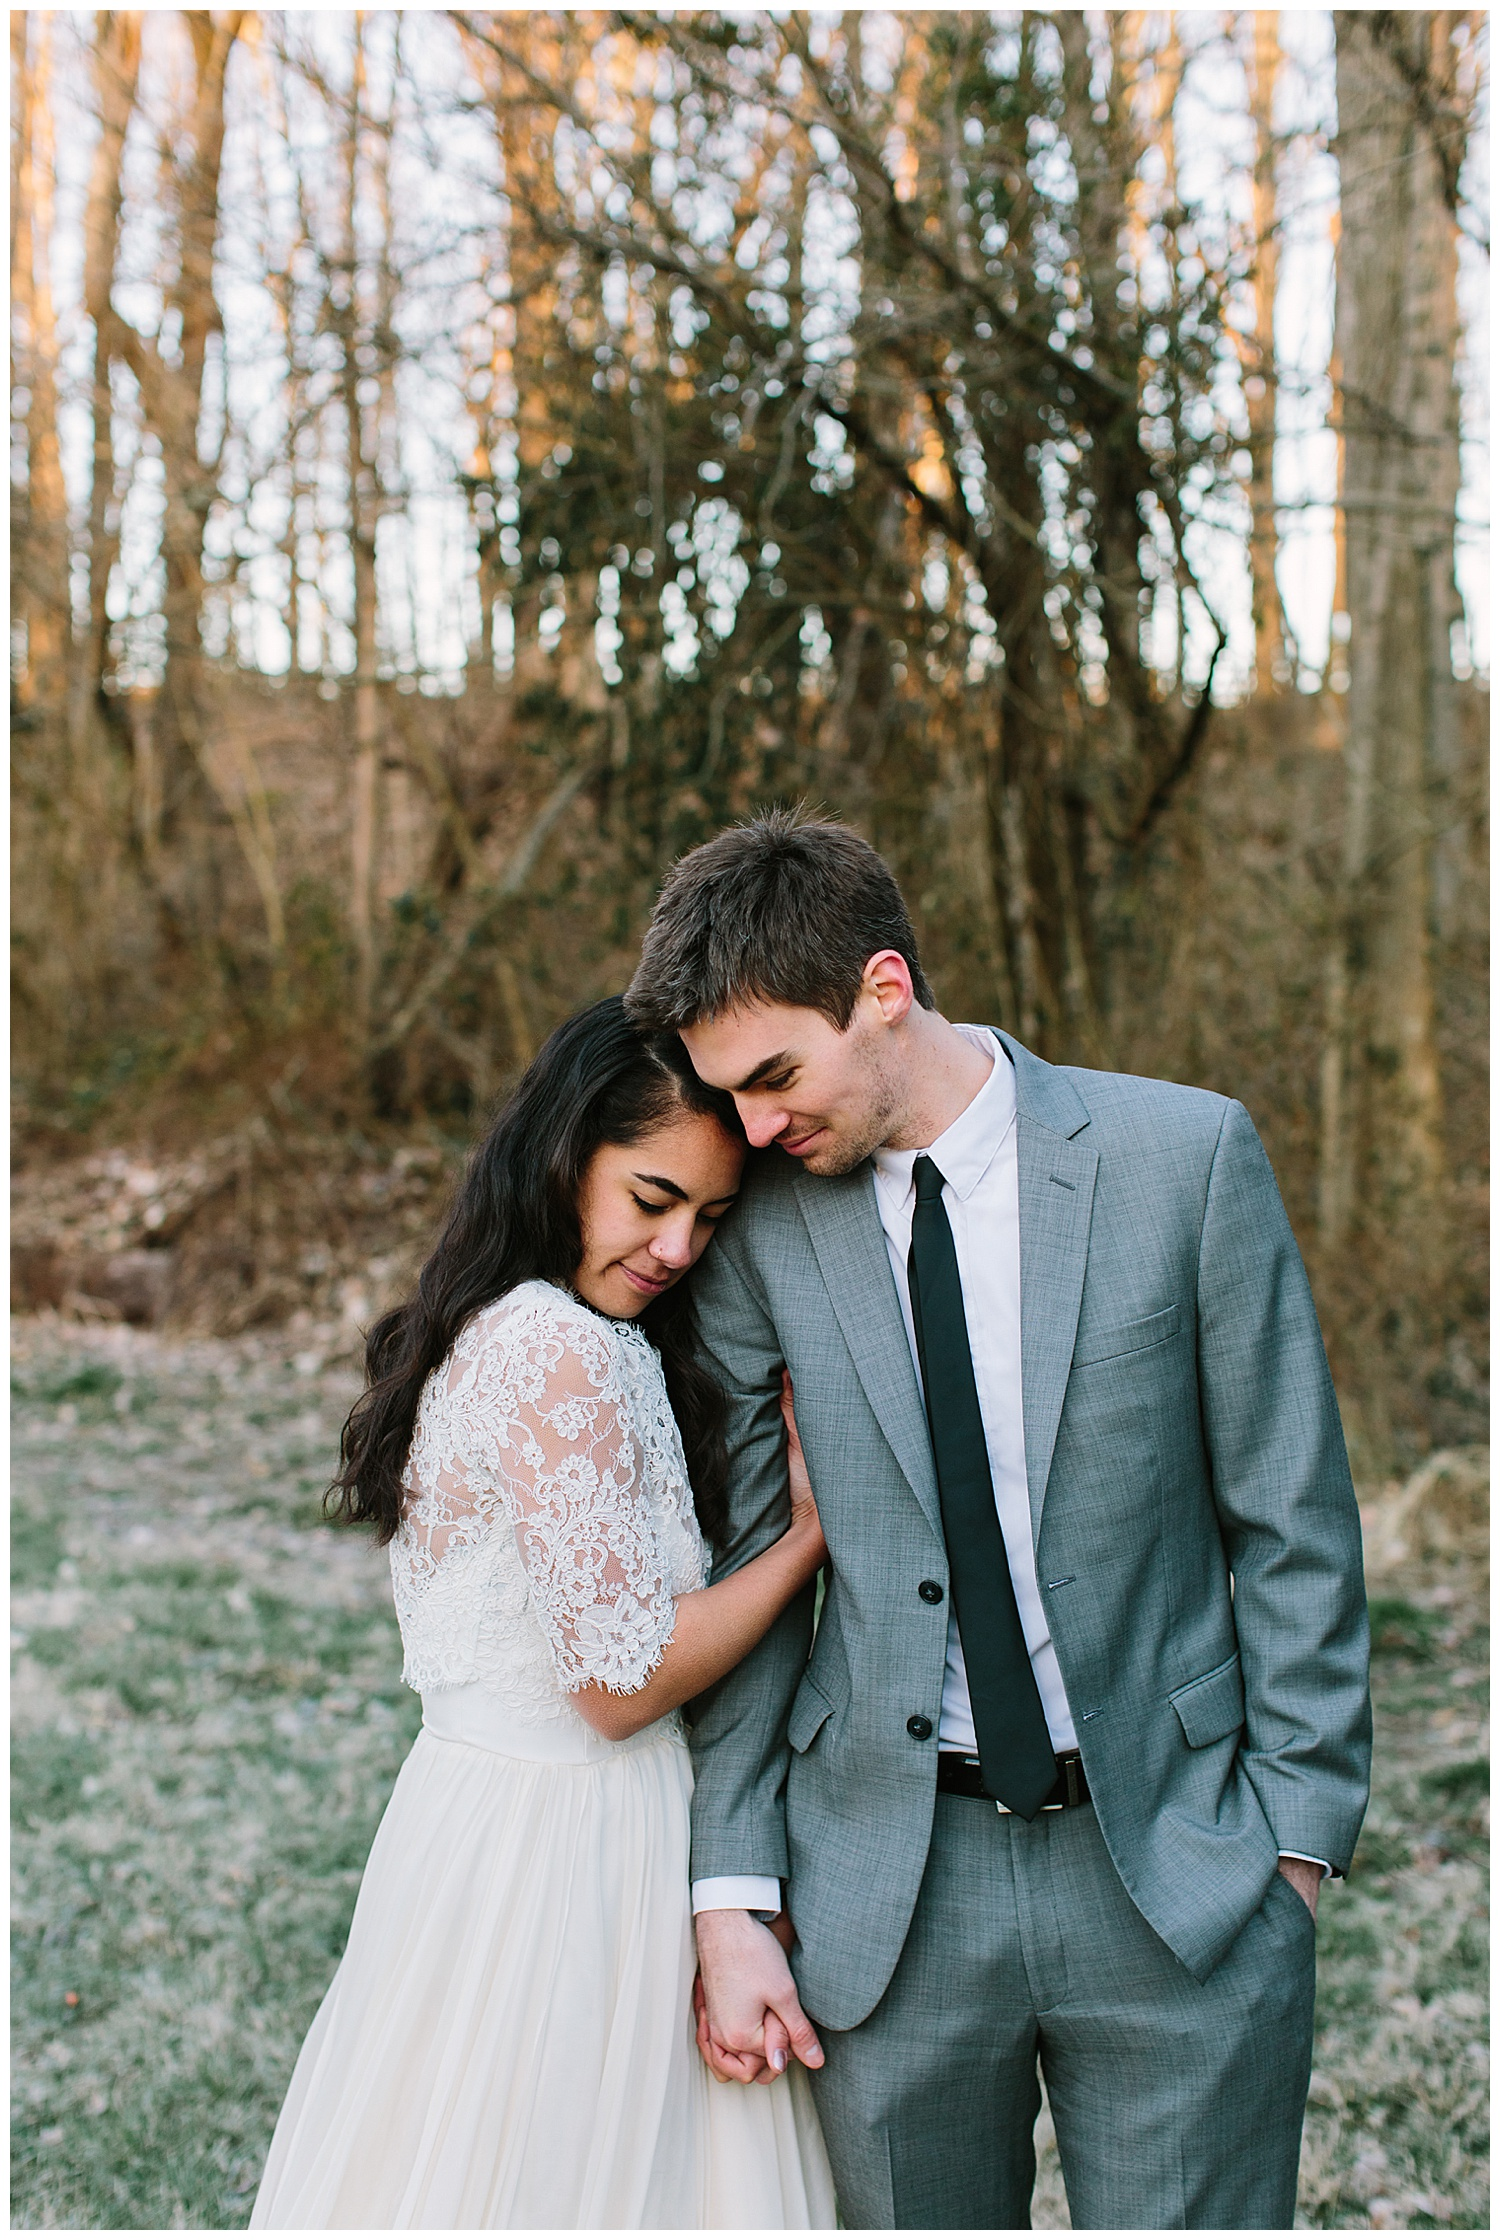 trent.and.kendra.photography.foxhollow.farm.elopement-56.jpg